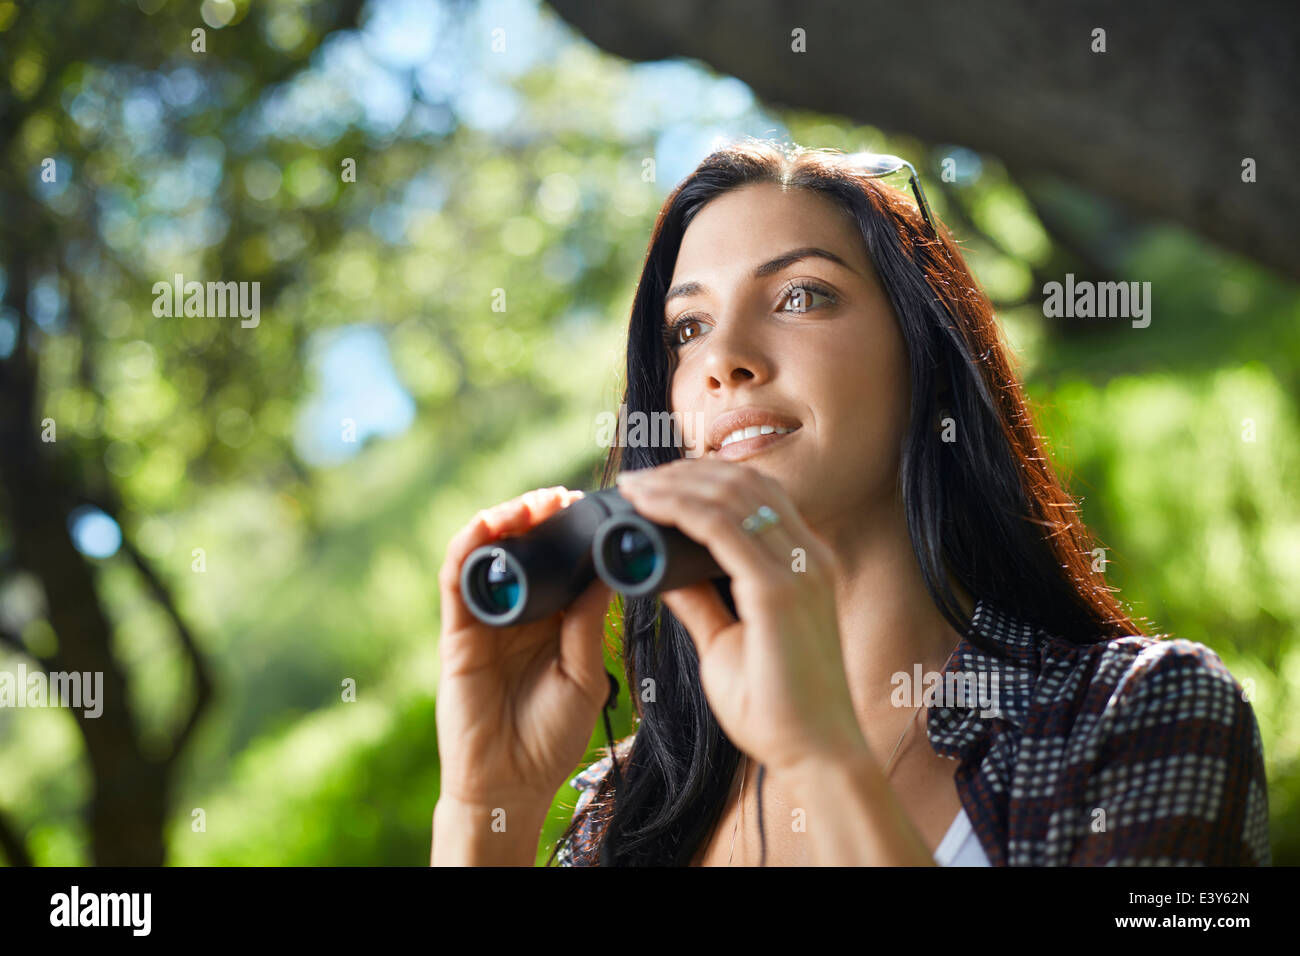 Mid adult woman with binoculars birdwatching in forest - Stock Image